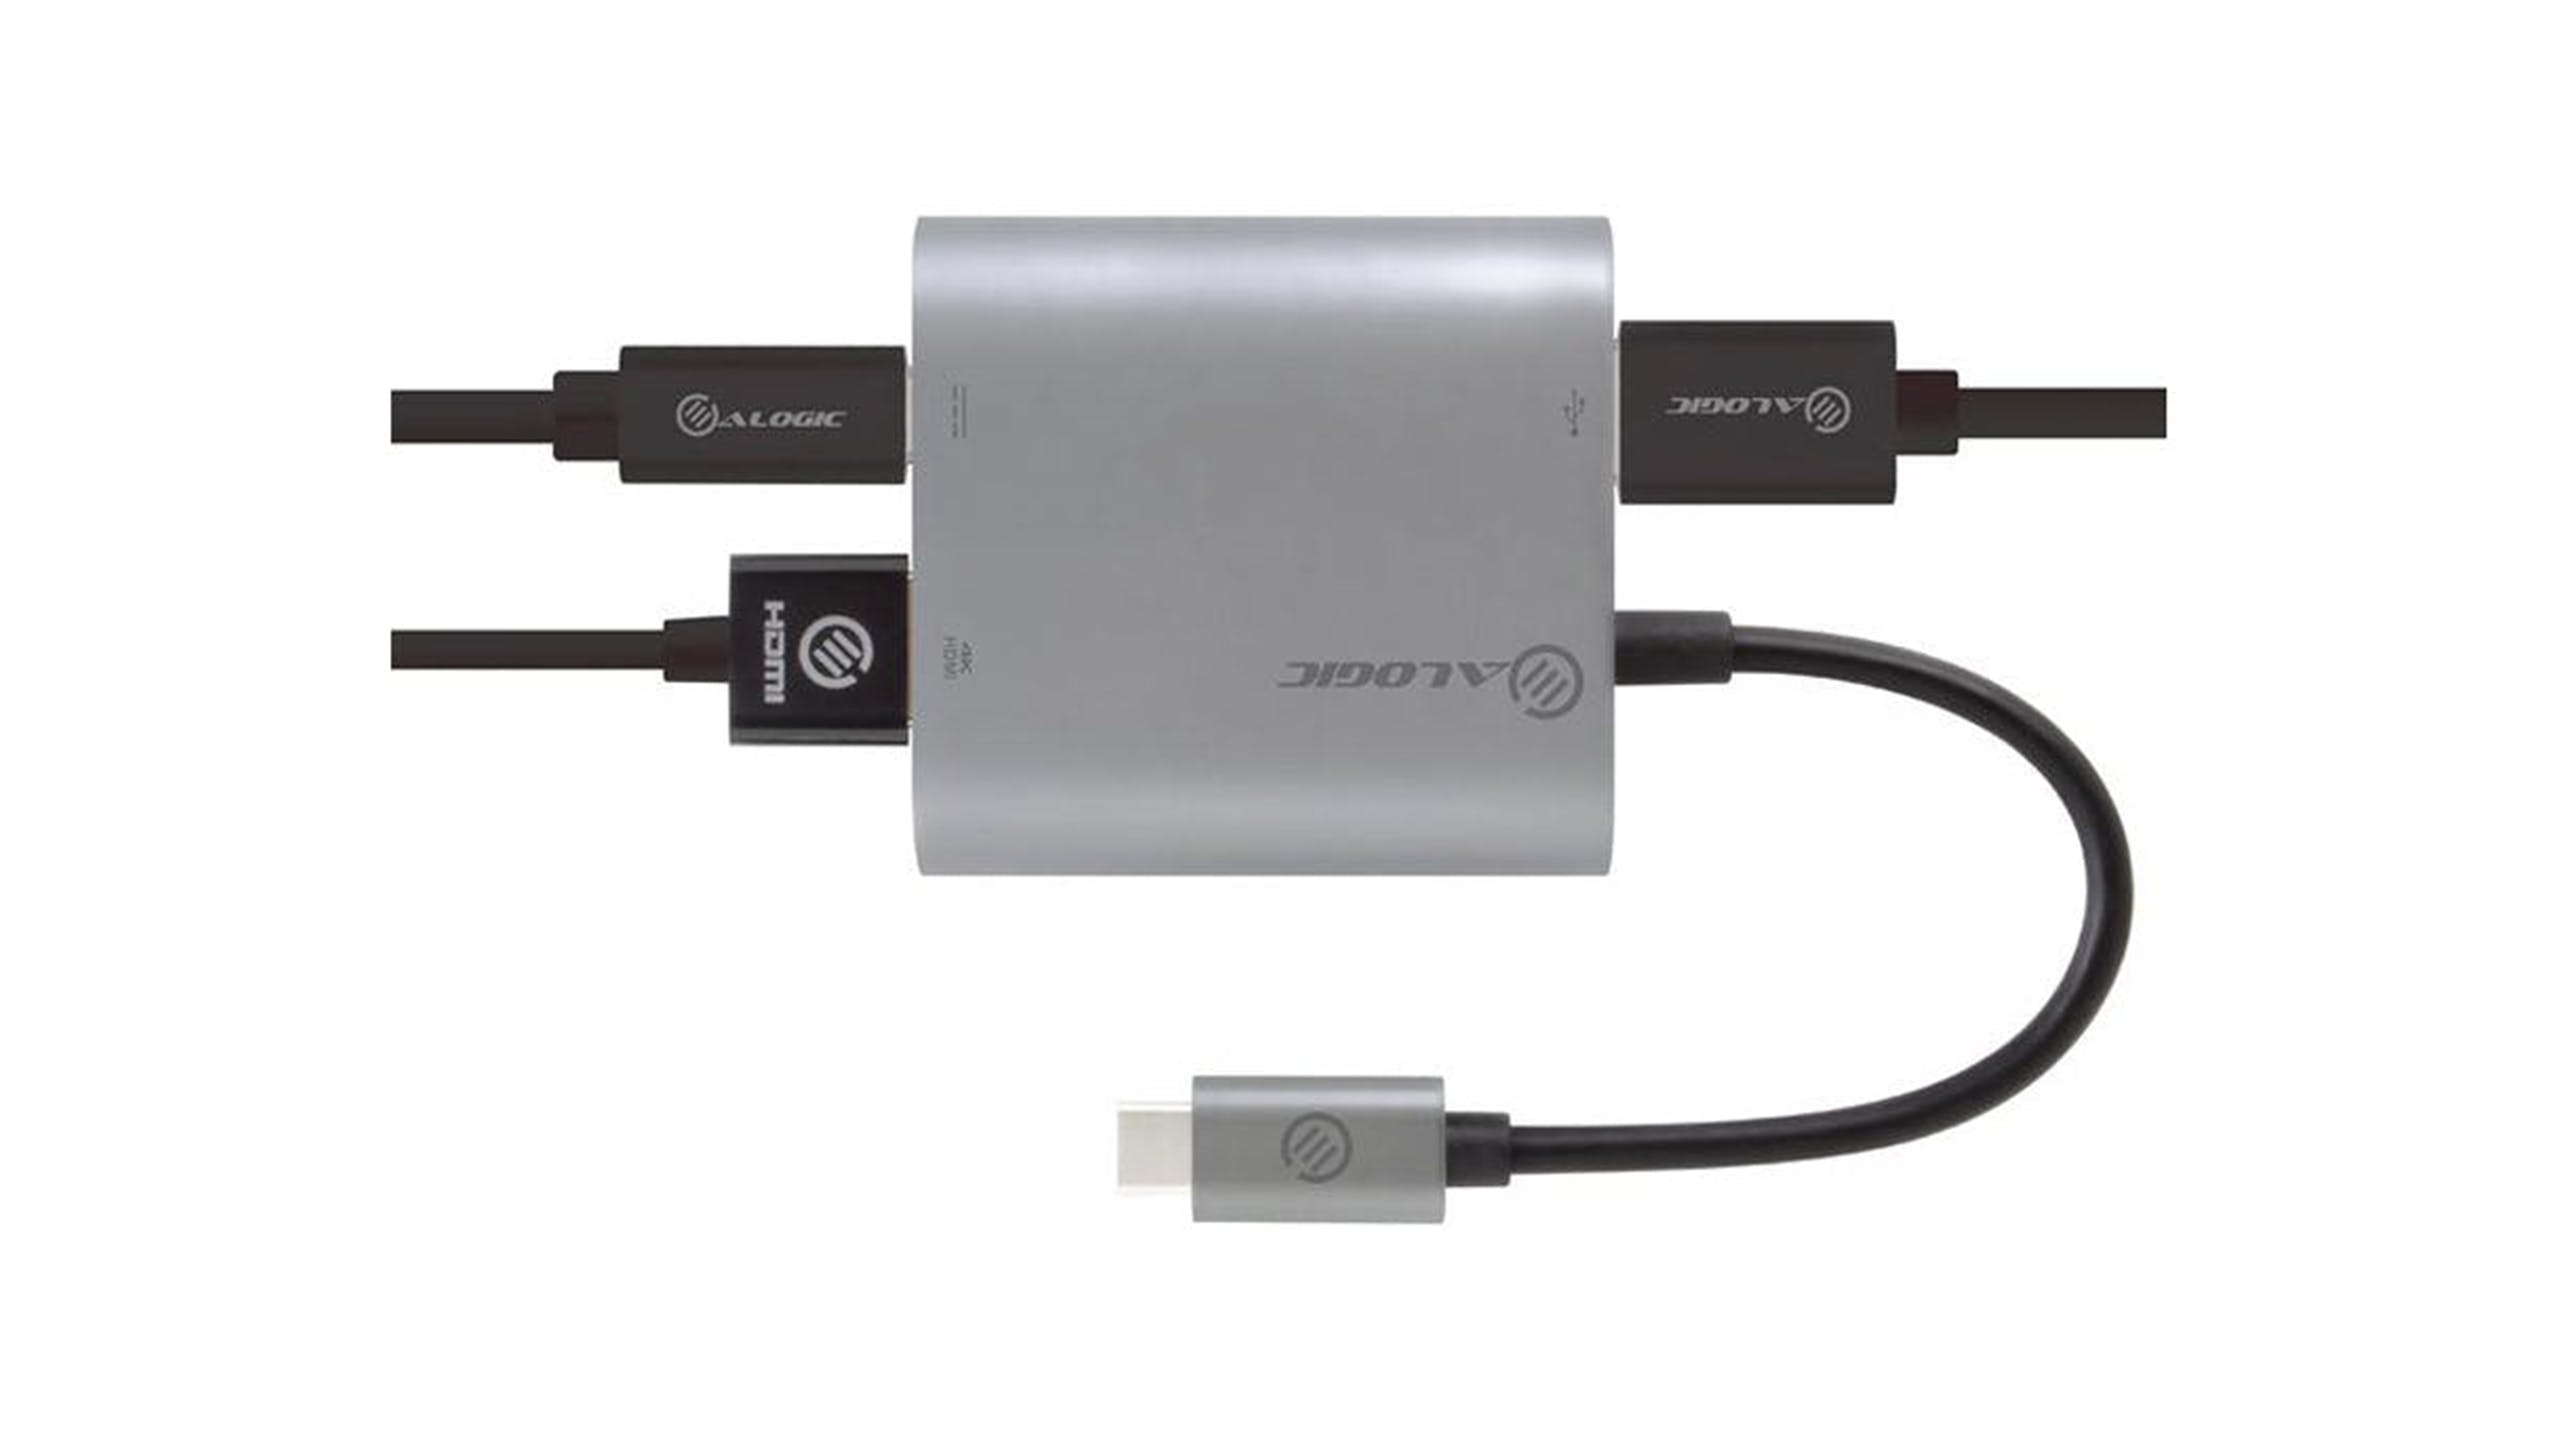 alogic usb c multiport adapter driver alogic usb c multiport adapter review alogic usb c multiport travel adapter alogic usb c multiport adapter officeworks alogic usb c adapter review